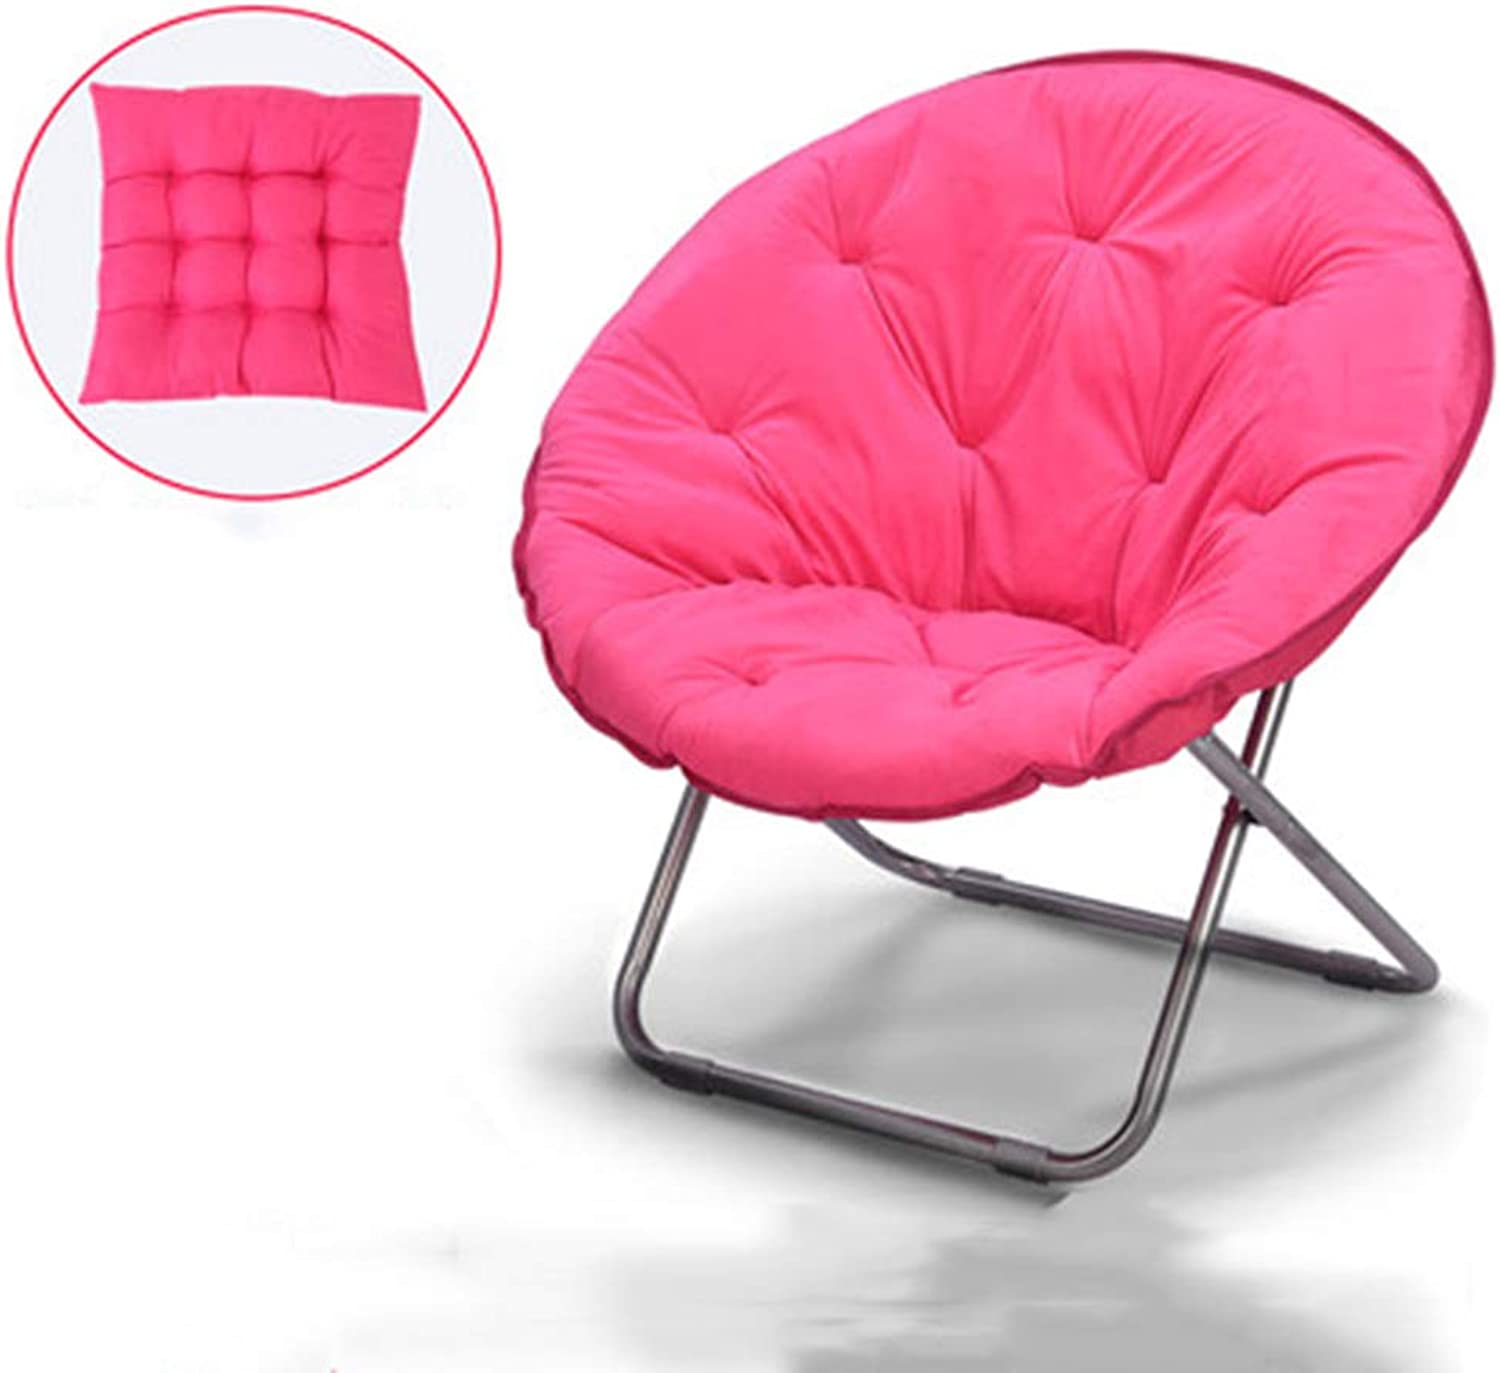 Large Lazy Chair Moon Chair Folding Recliner Dormitory Chair Lunch Break Lazy Couch Chair Sun Lounger Leisure